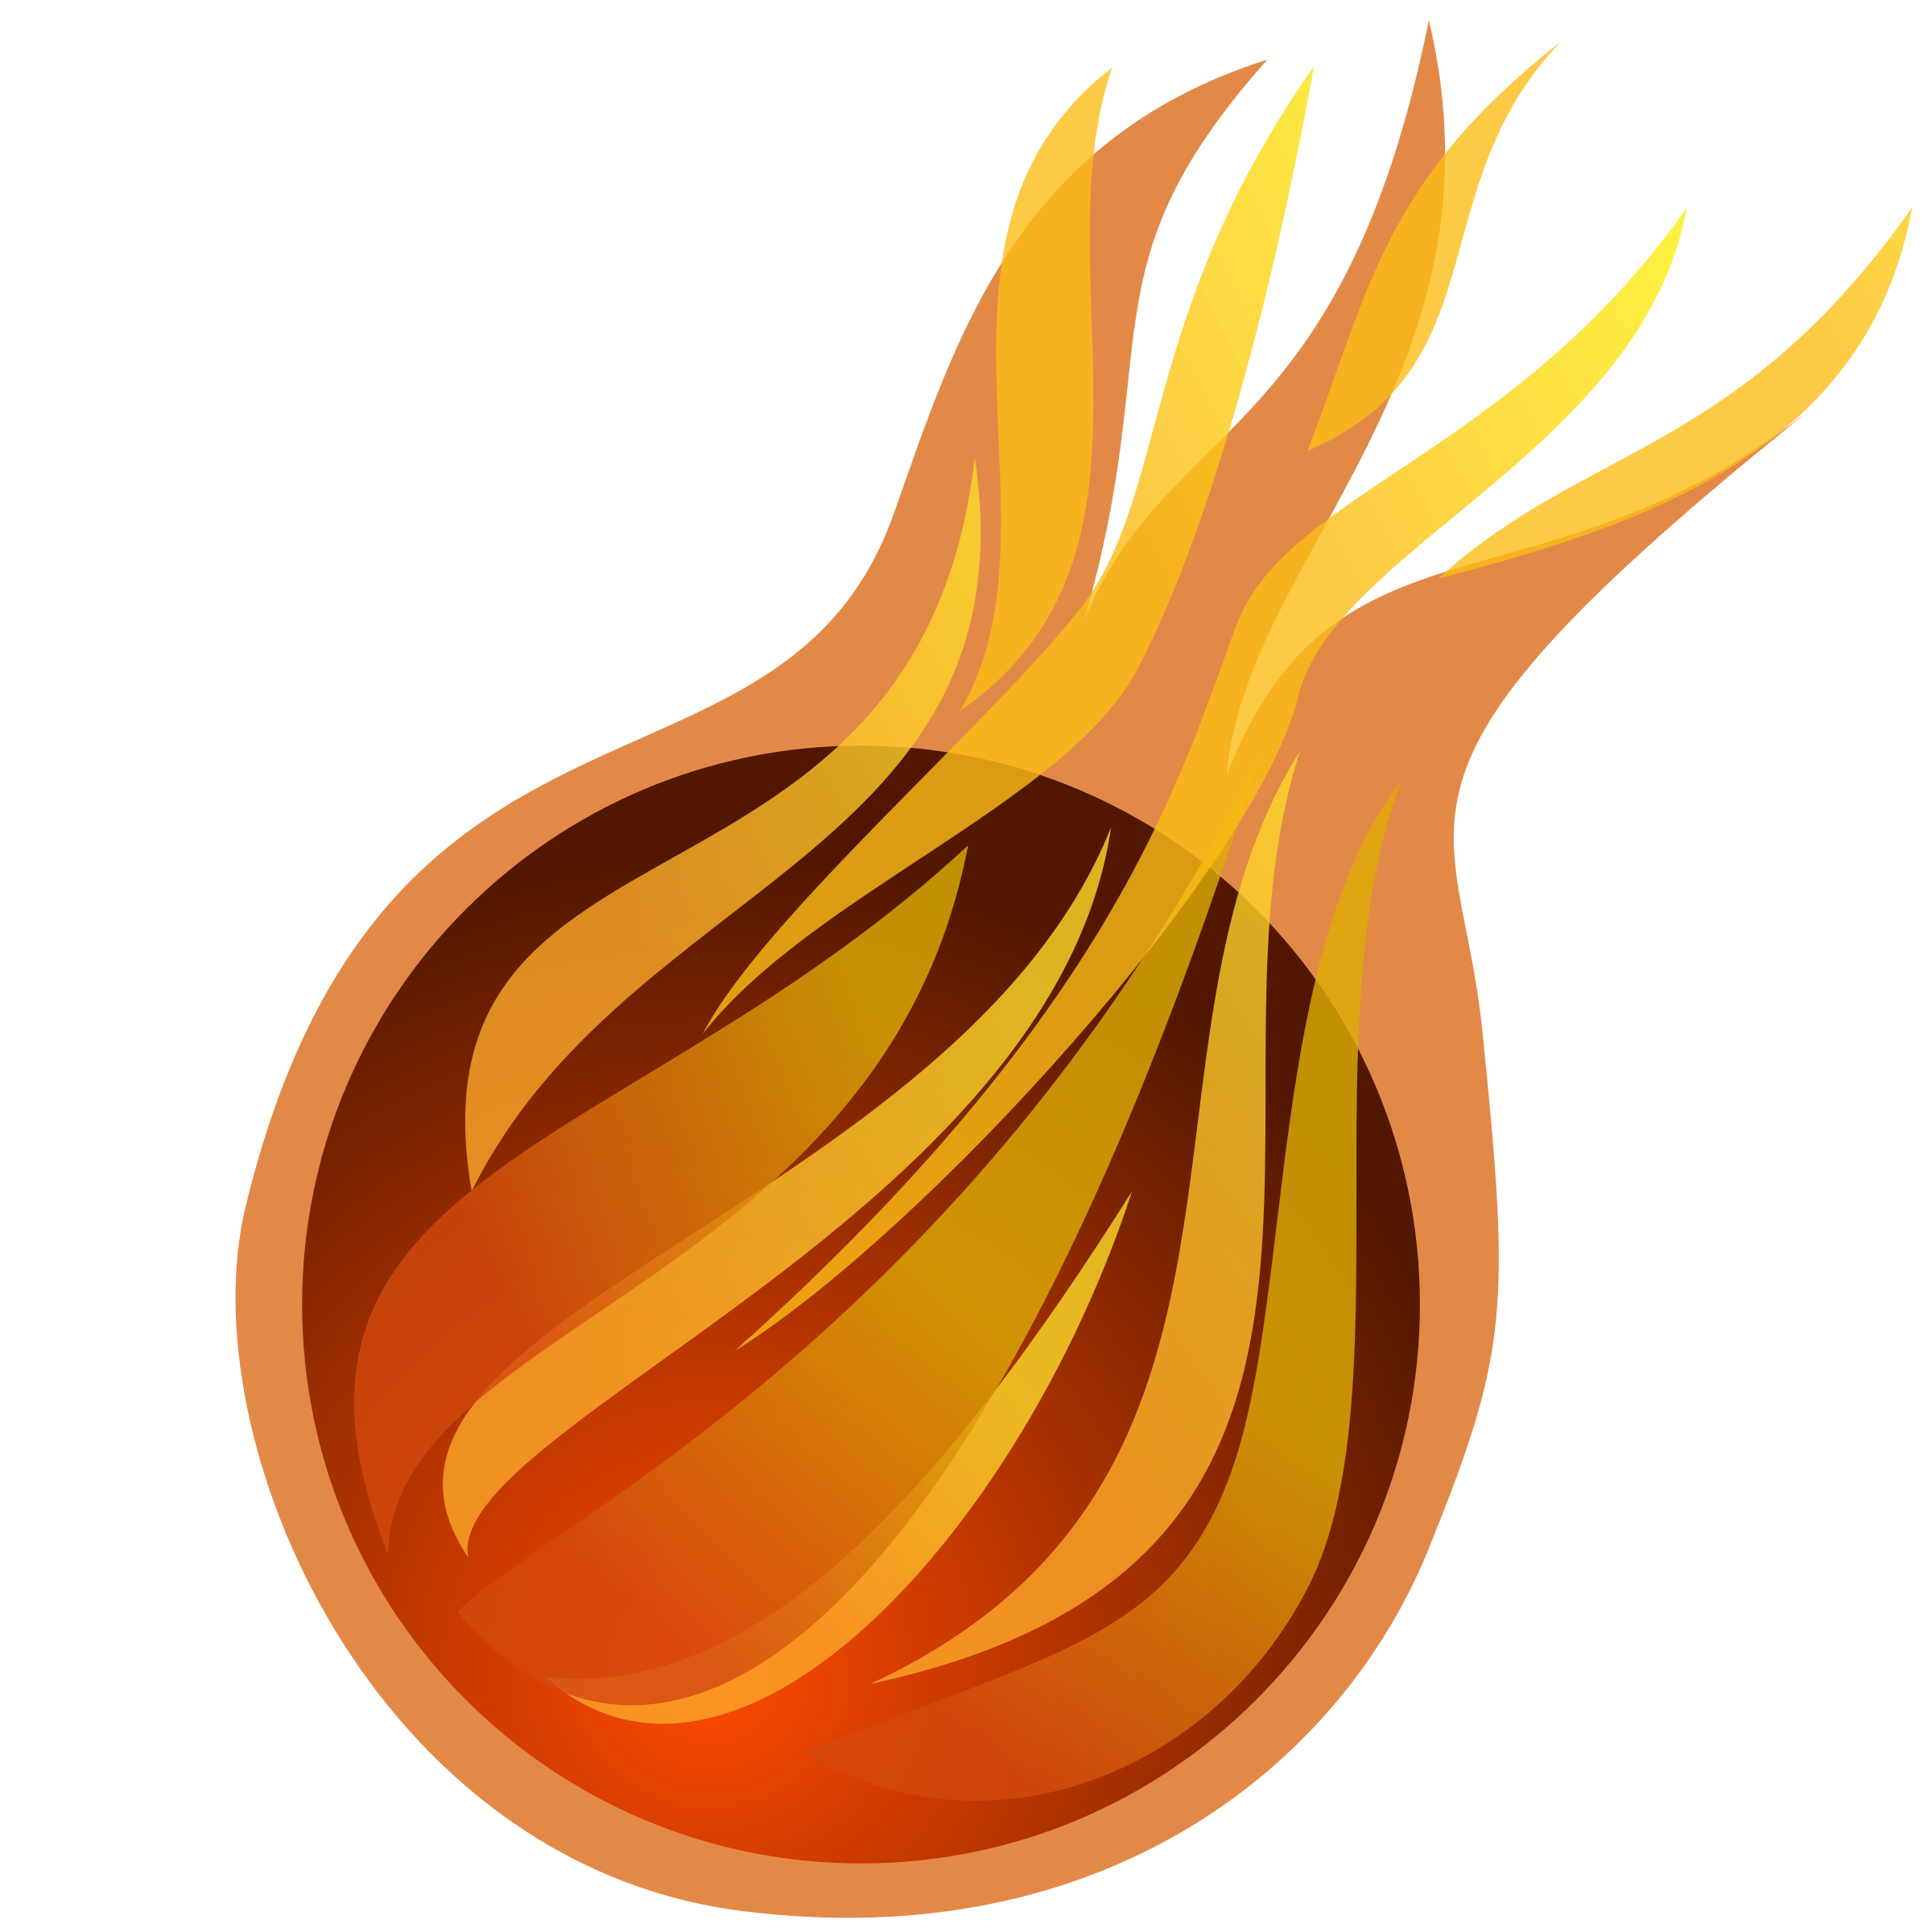 Fireball big image png. Fire clipart simple